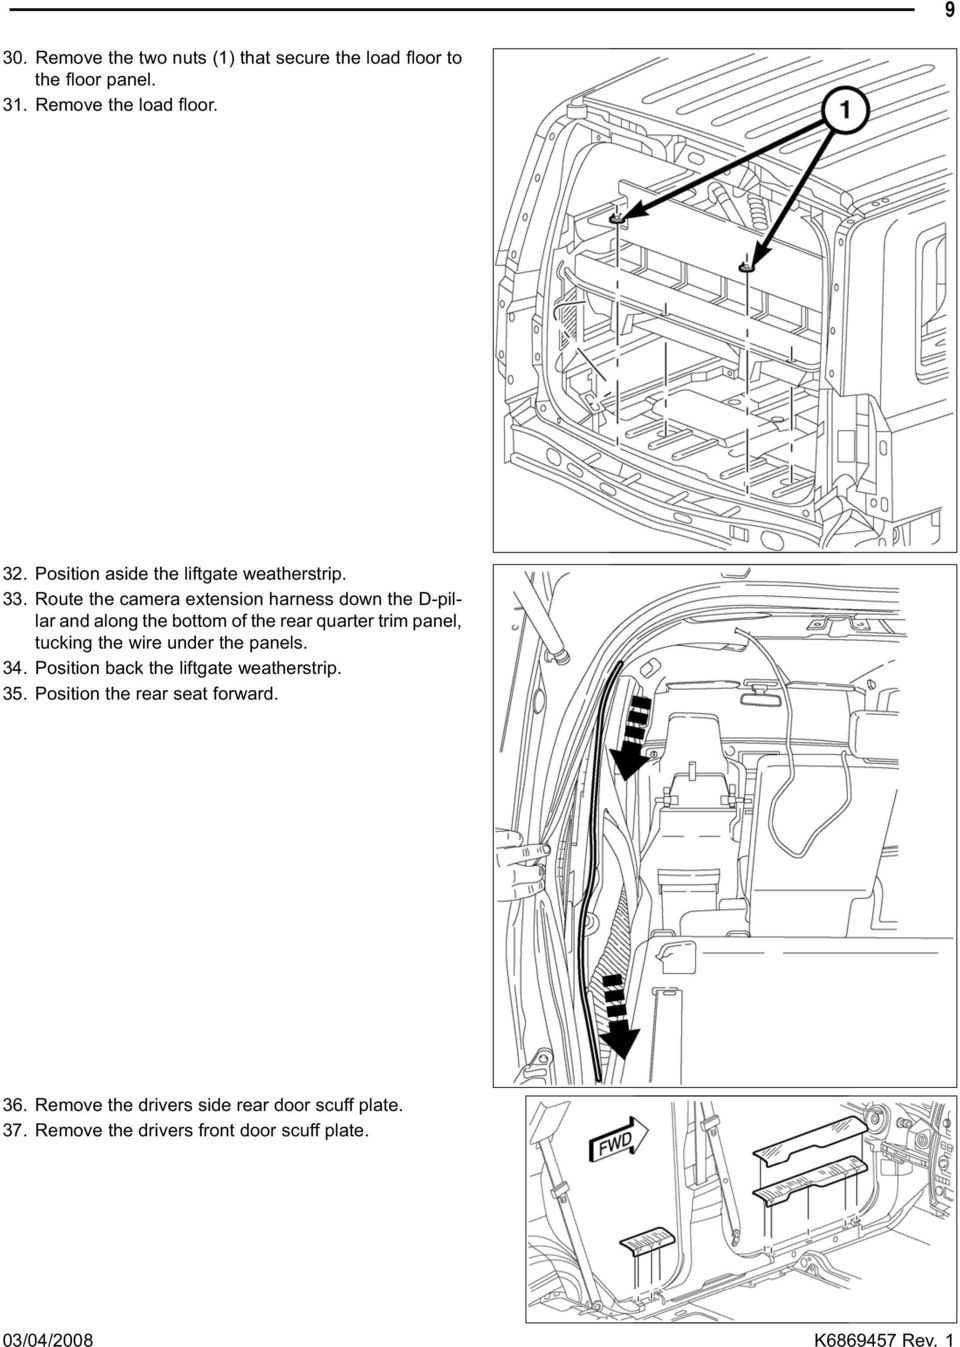 2007 jeep grand cherokee backup camera wiring diagram backup camera jeep commander grand cherokee pdf free download  backup camera jeep commander grand